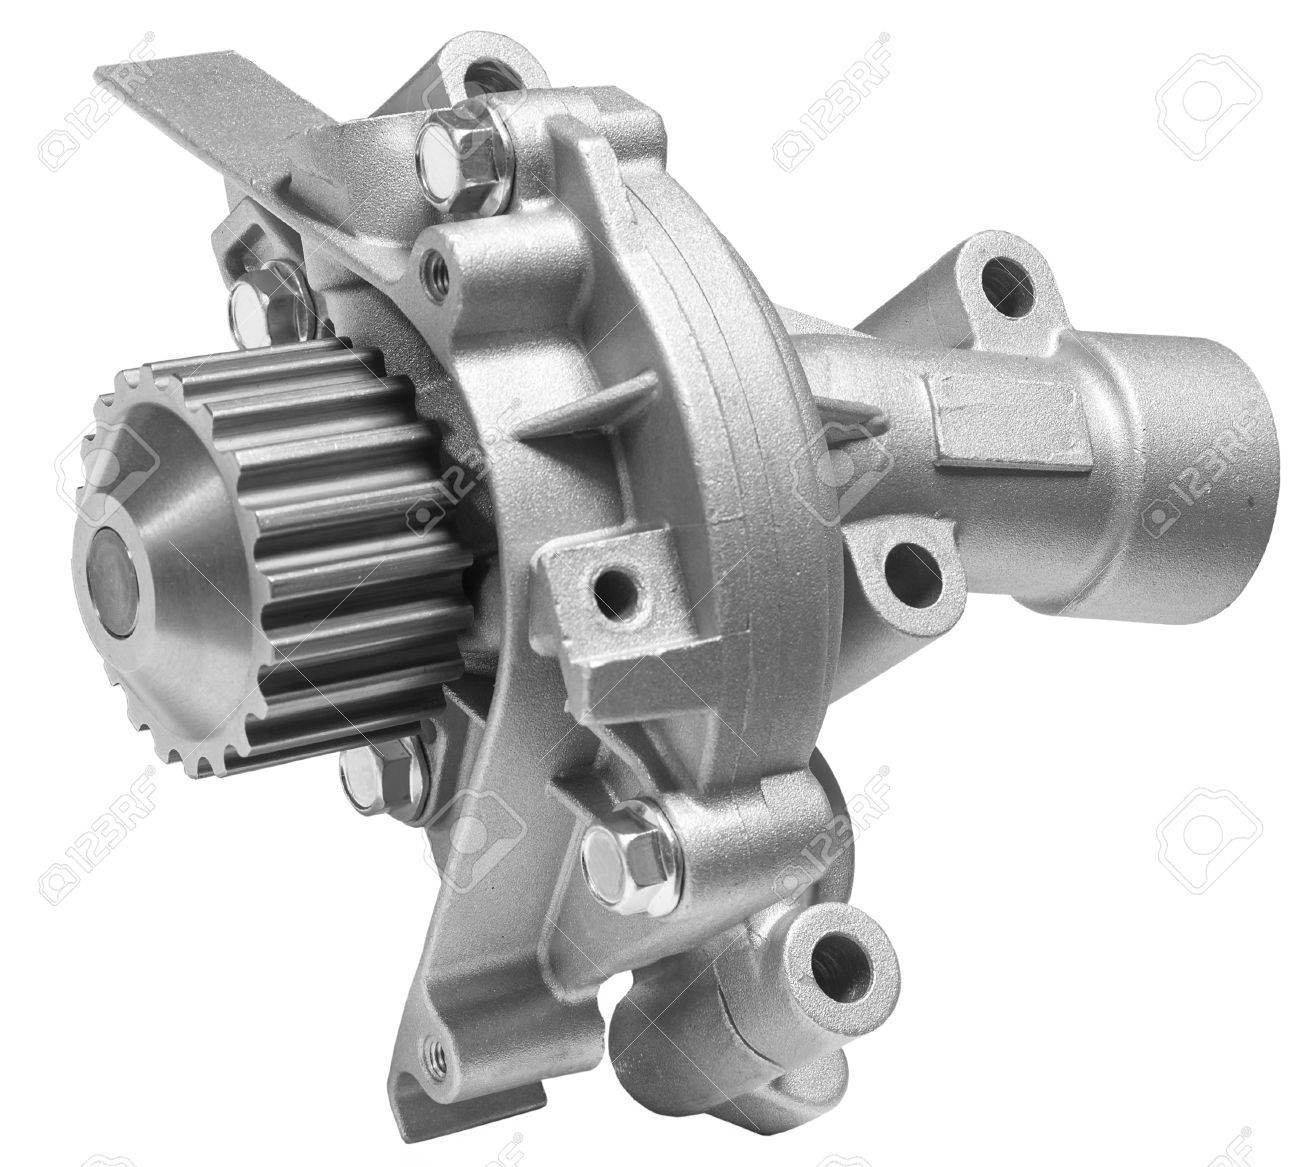 Water Pump Car >> Water Pump Of The Cooling System Of The Car On A White Background